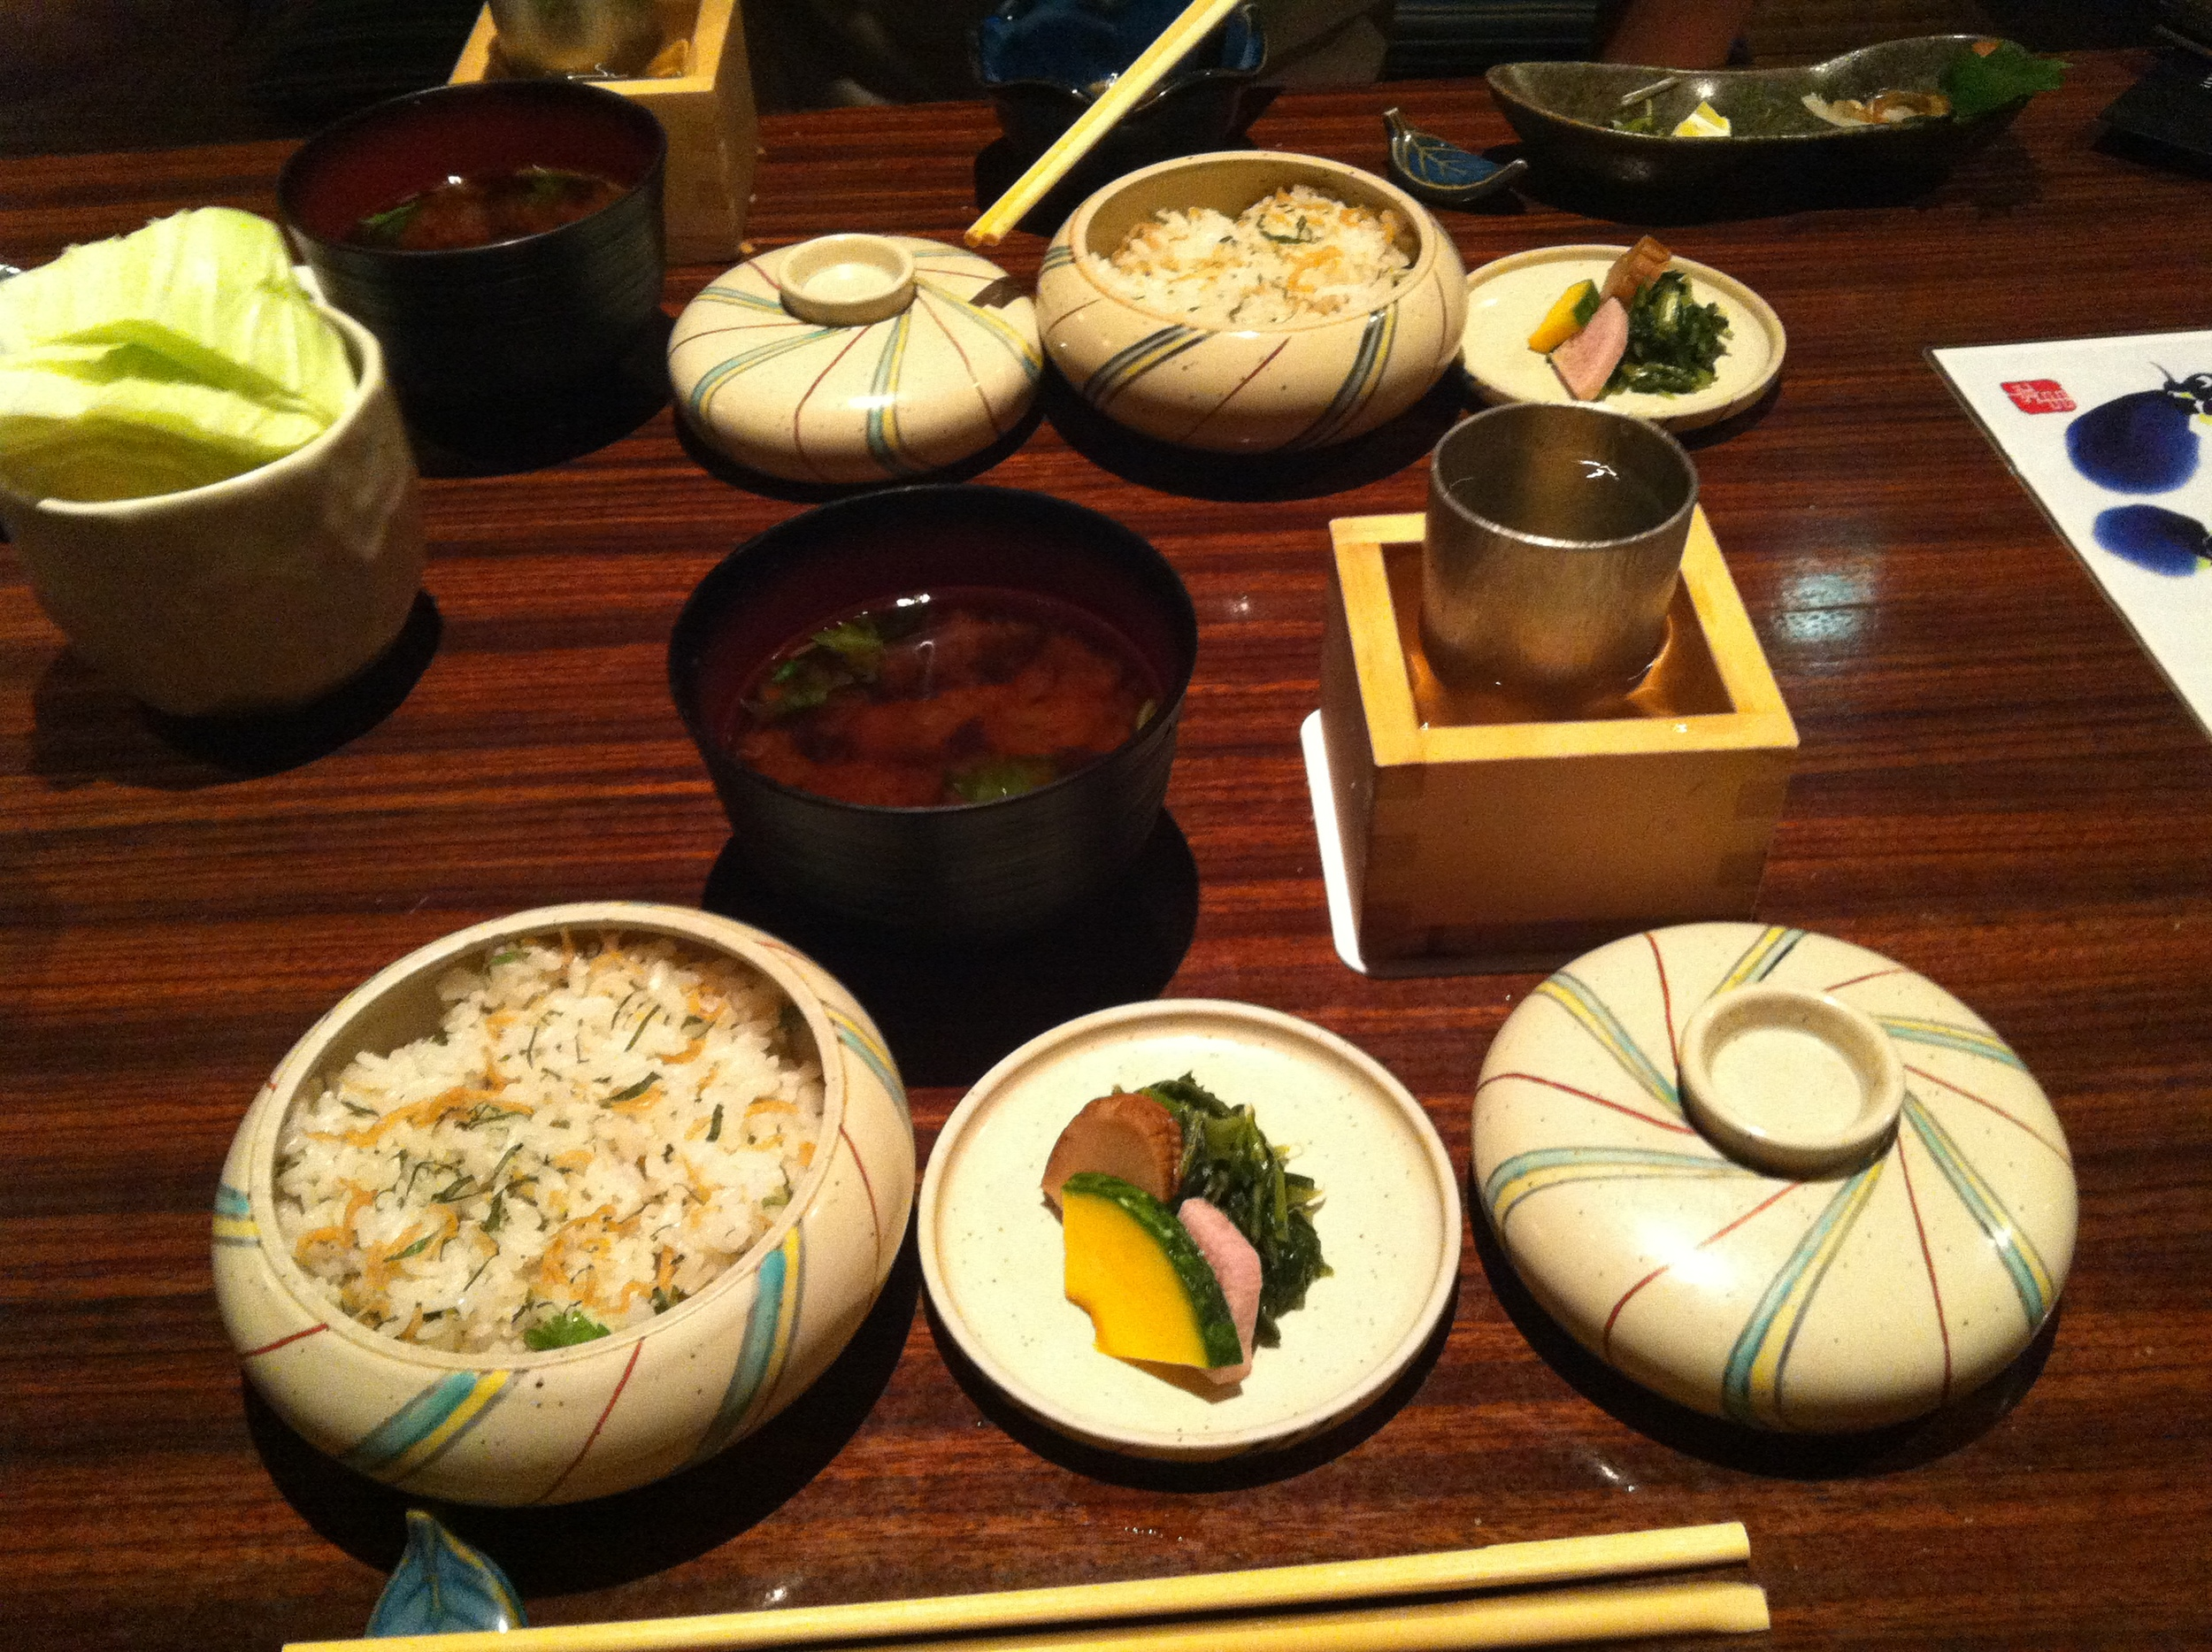 Seasonal vegetables, rice with minnows and pickles